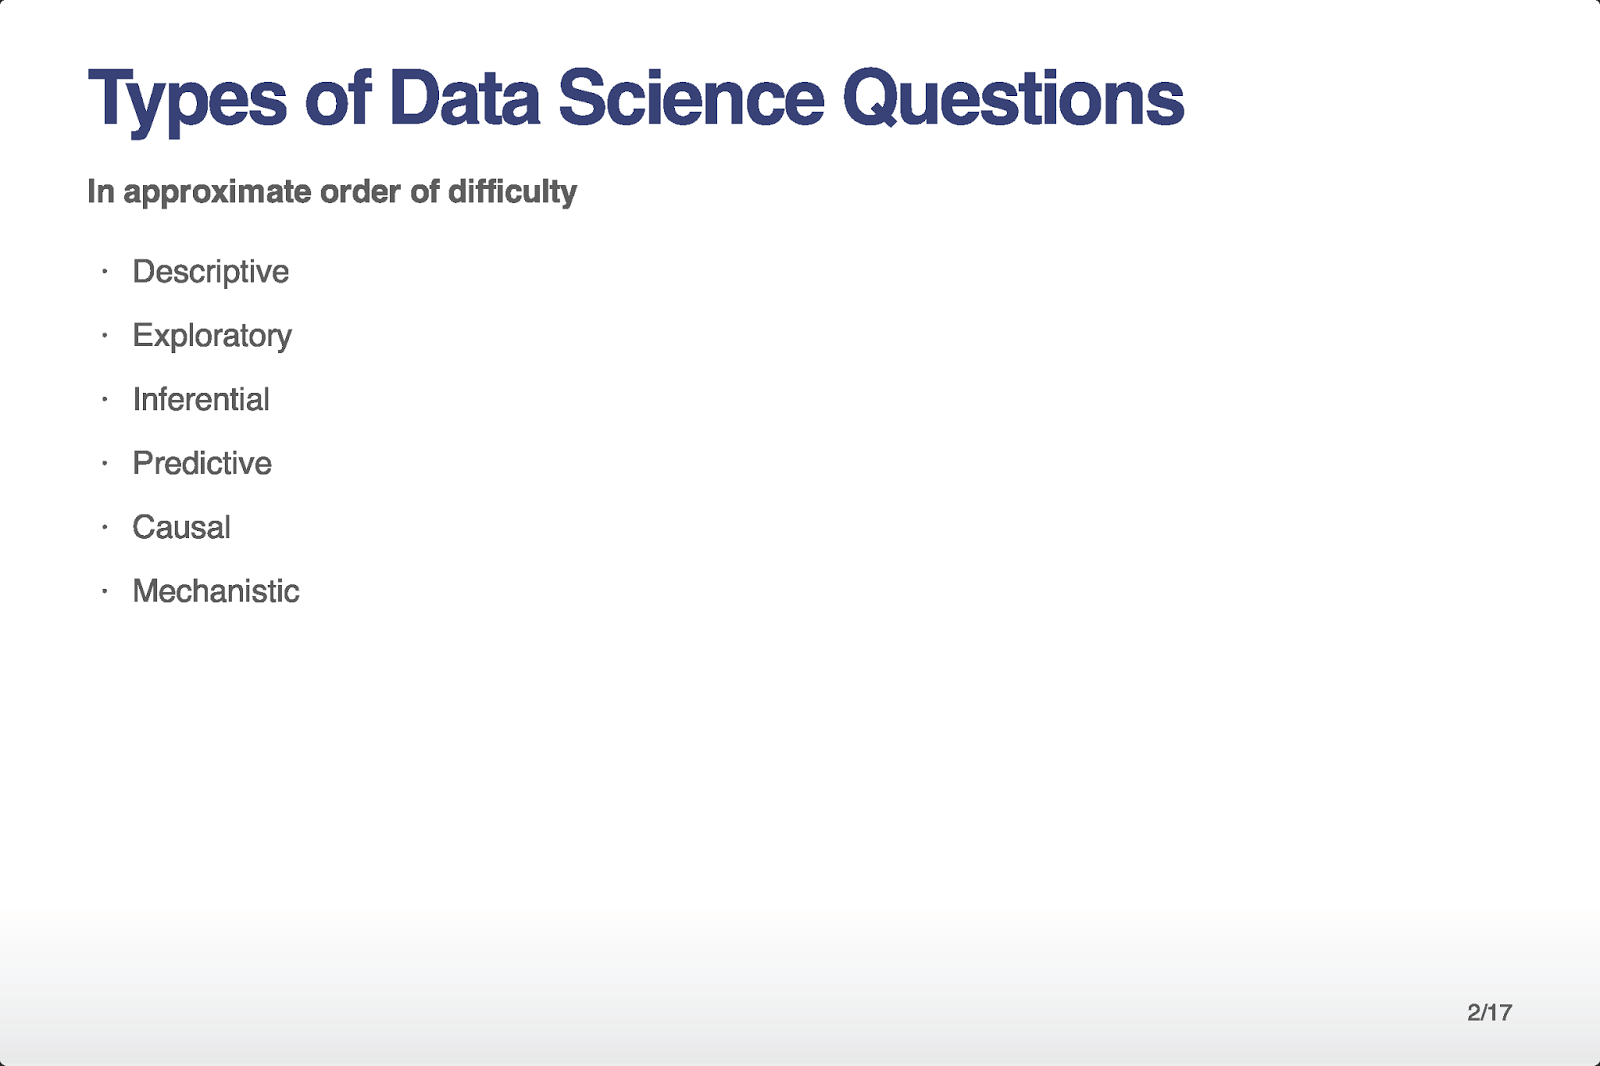 knowledge seeker u0026 39 s blog  types of data science questions